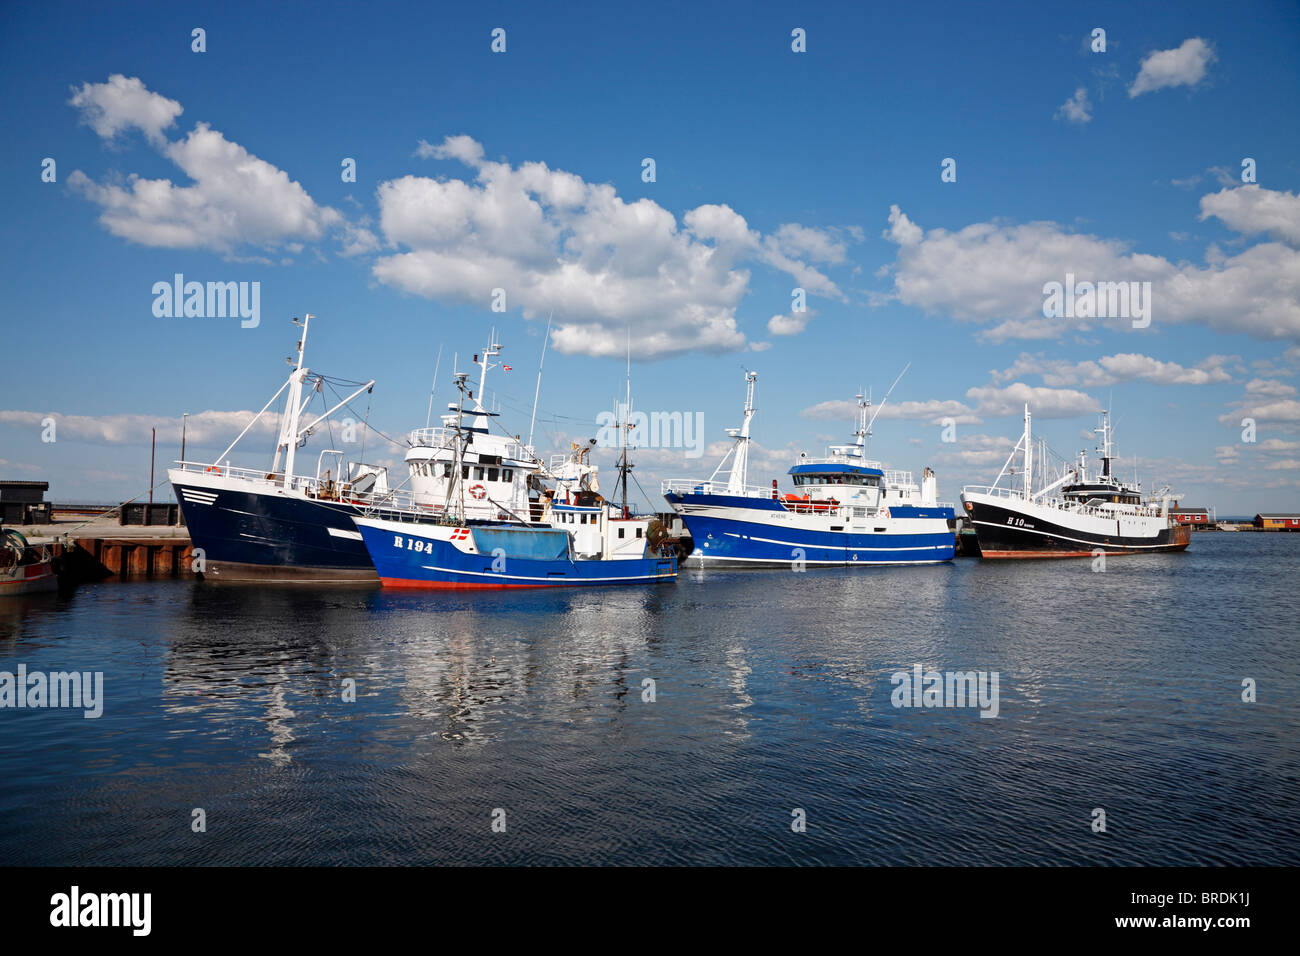 Part of the fishing fleet in the Danish harbour Gilleleje on the north coast of Zealand, Denmark Stock Photo